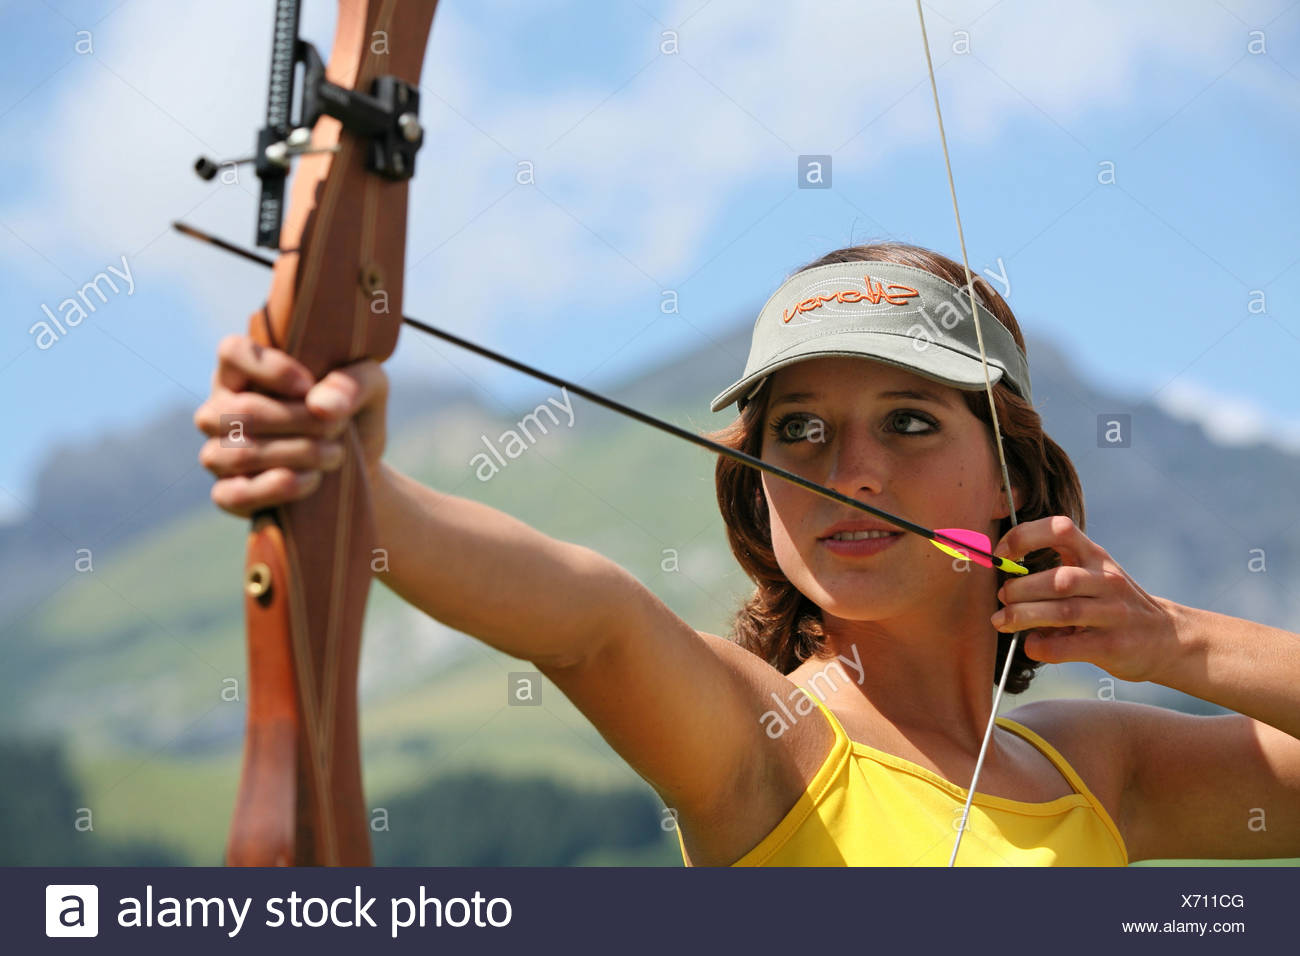 archery Outside curves arrow sighting woman weapon arms firearm sports precision sport shooter archer bow - Stock Image